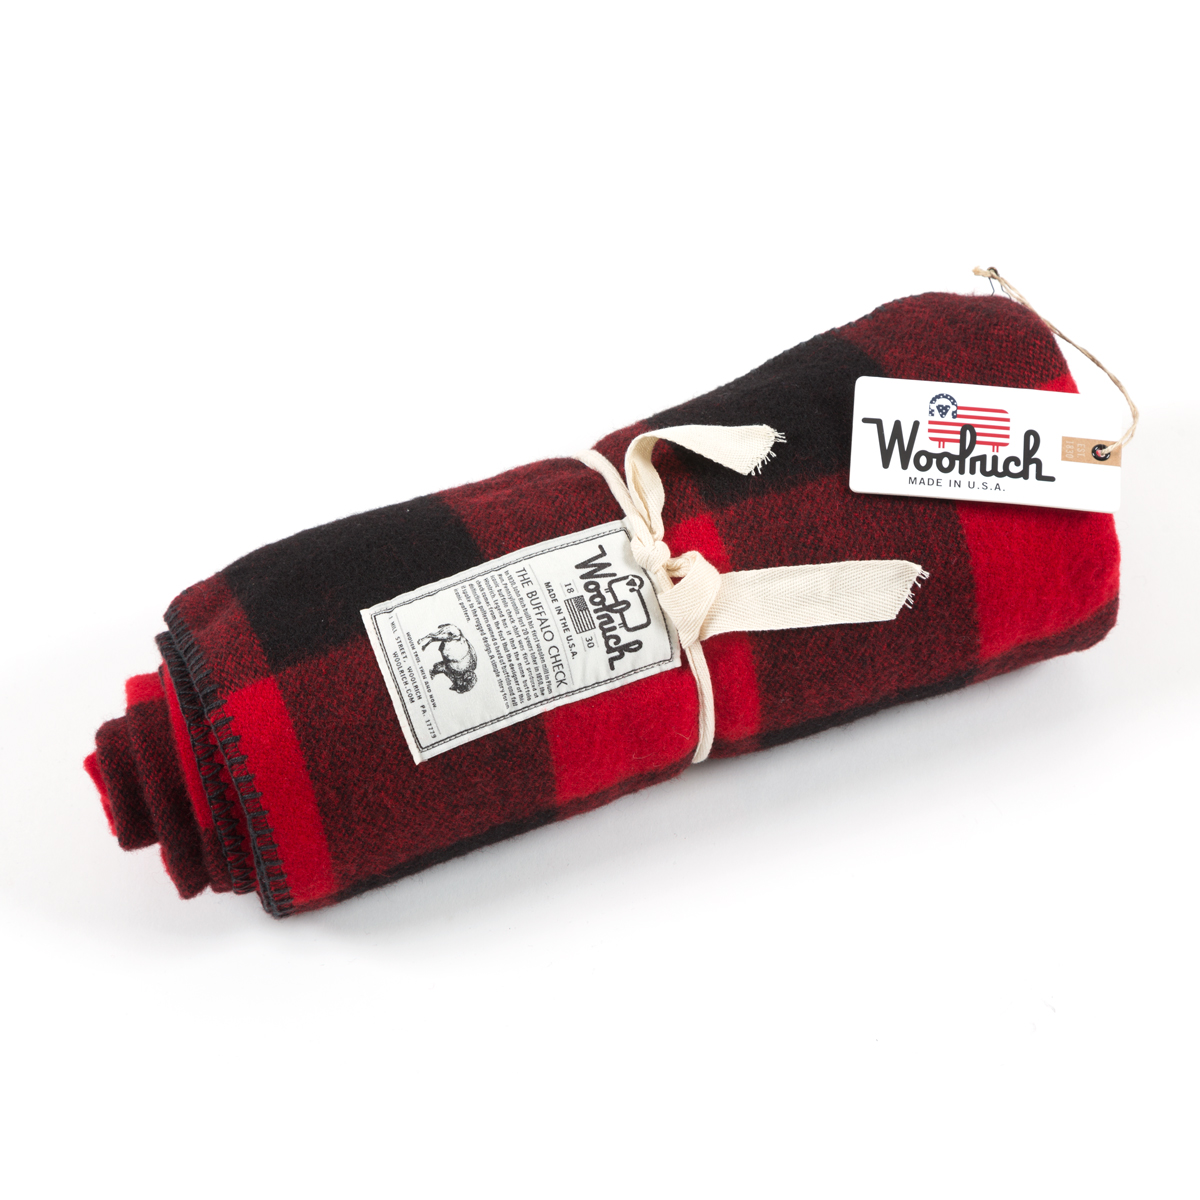 Woolrich for Phish Driver Blanket - Red